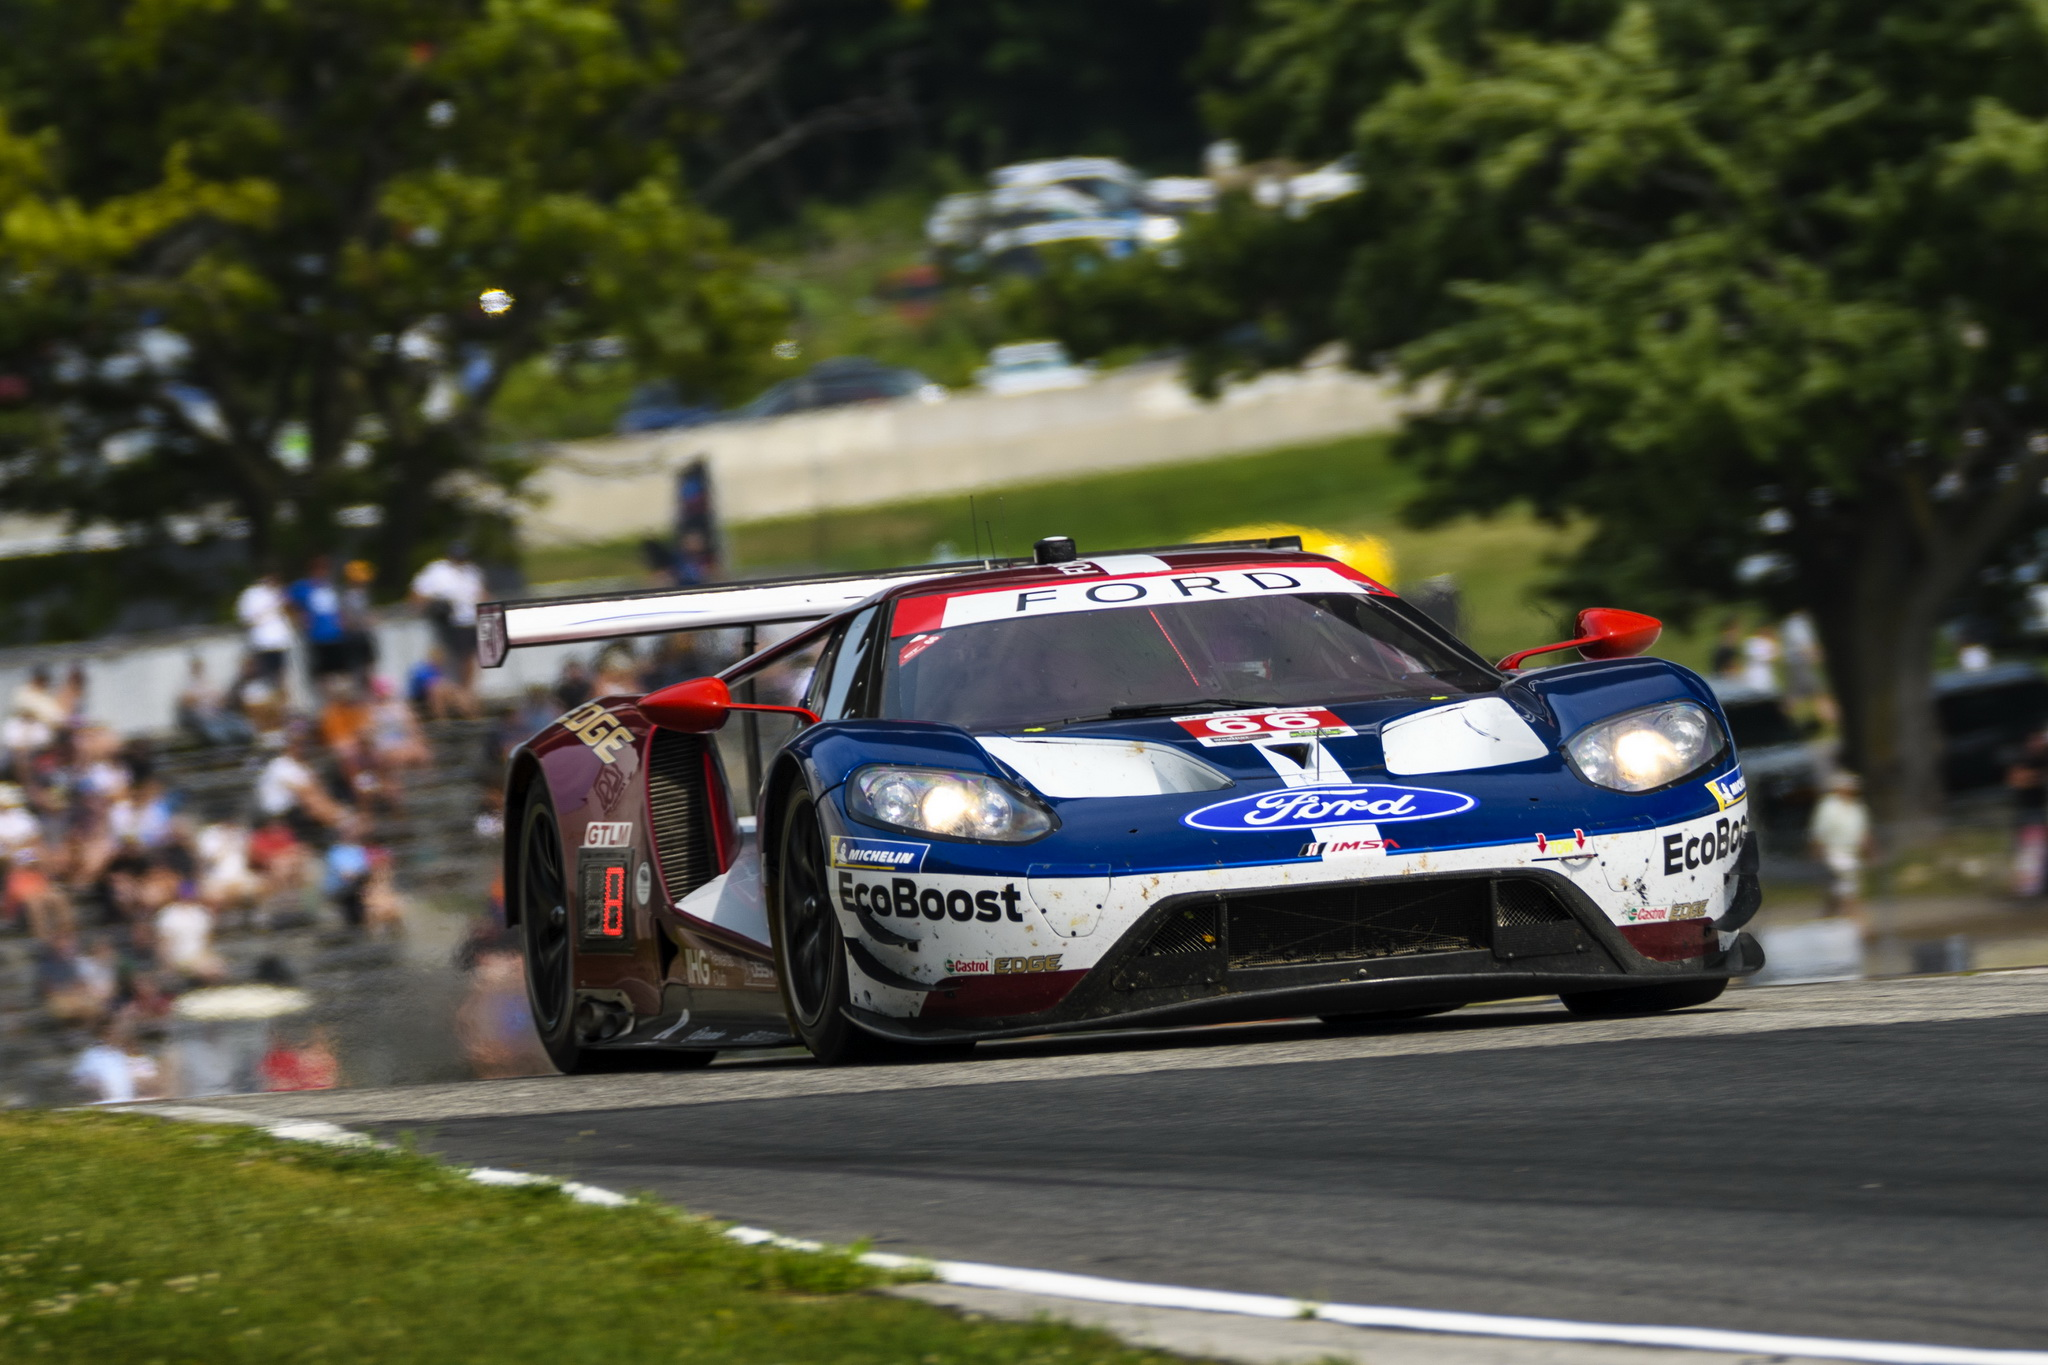 Title Within Sight for Ford Chip Ganassi Racing as IMSA Season Reaches End at Petit Le Mans